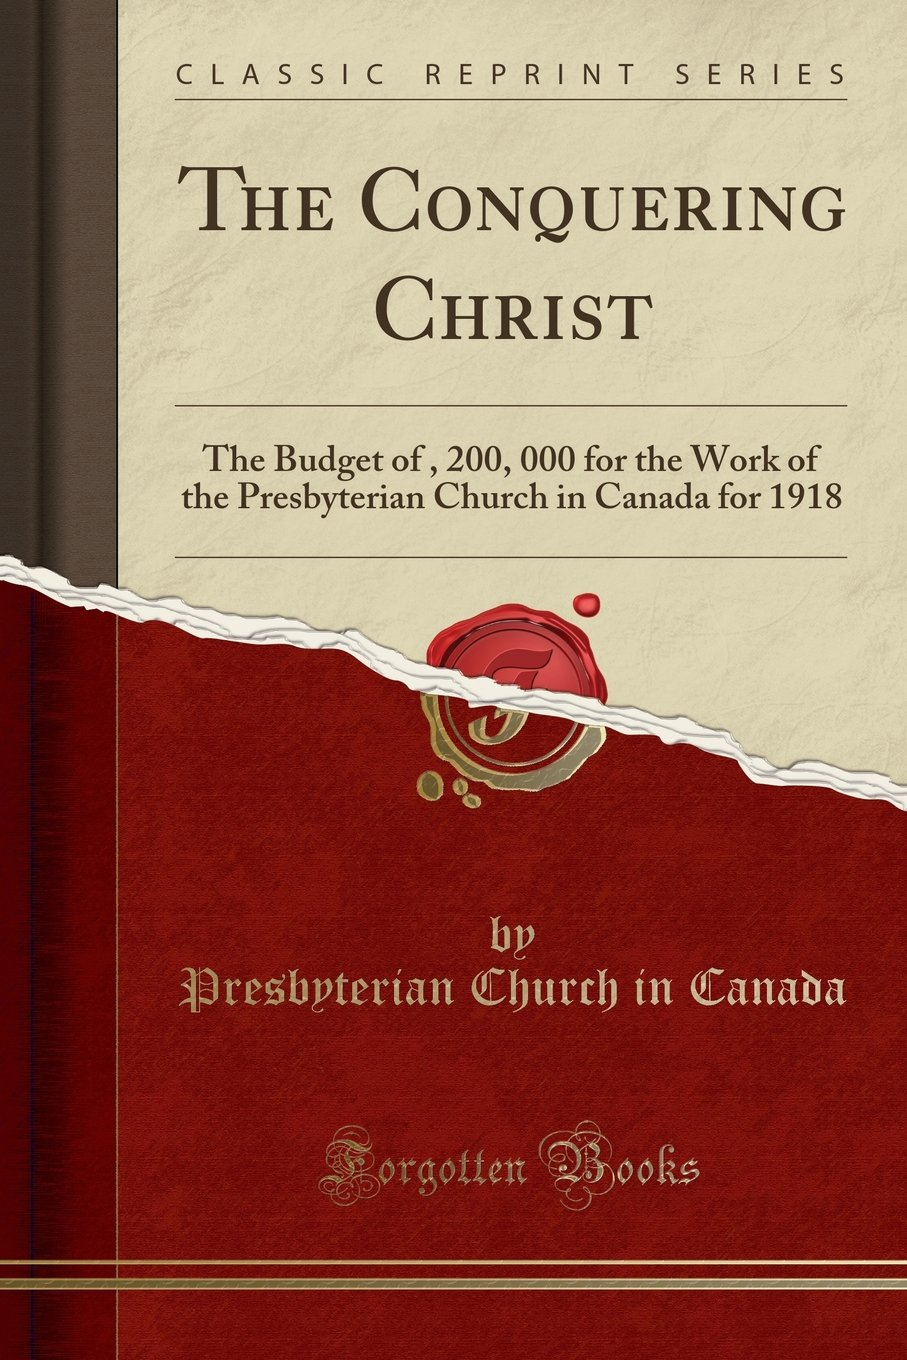 The Conquering Christ: The Budget of $1, 200, 000 for the Work of the Presbyterian Church in Canada for 1918 (Classic Reprint) pdf